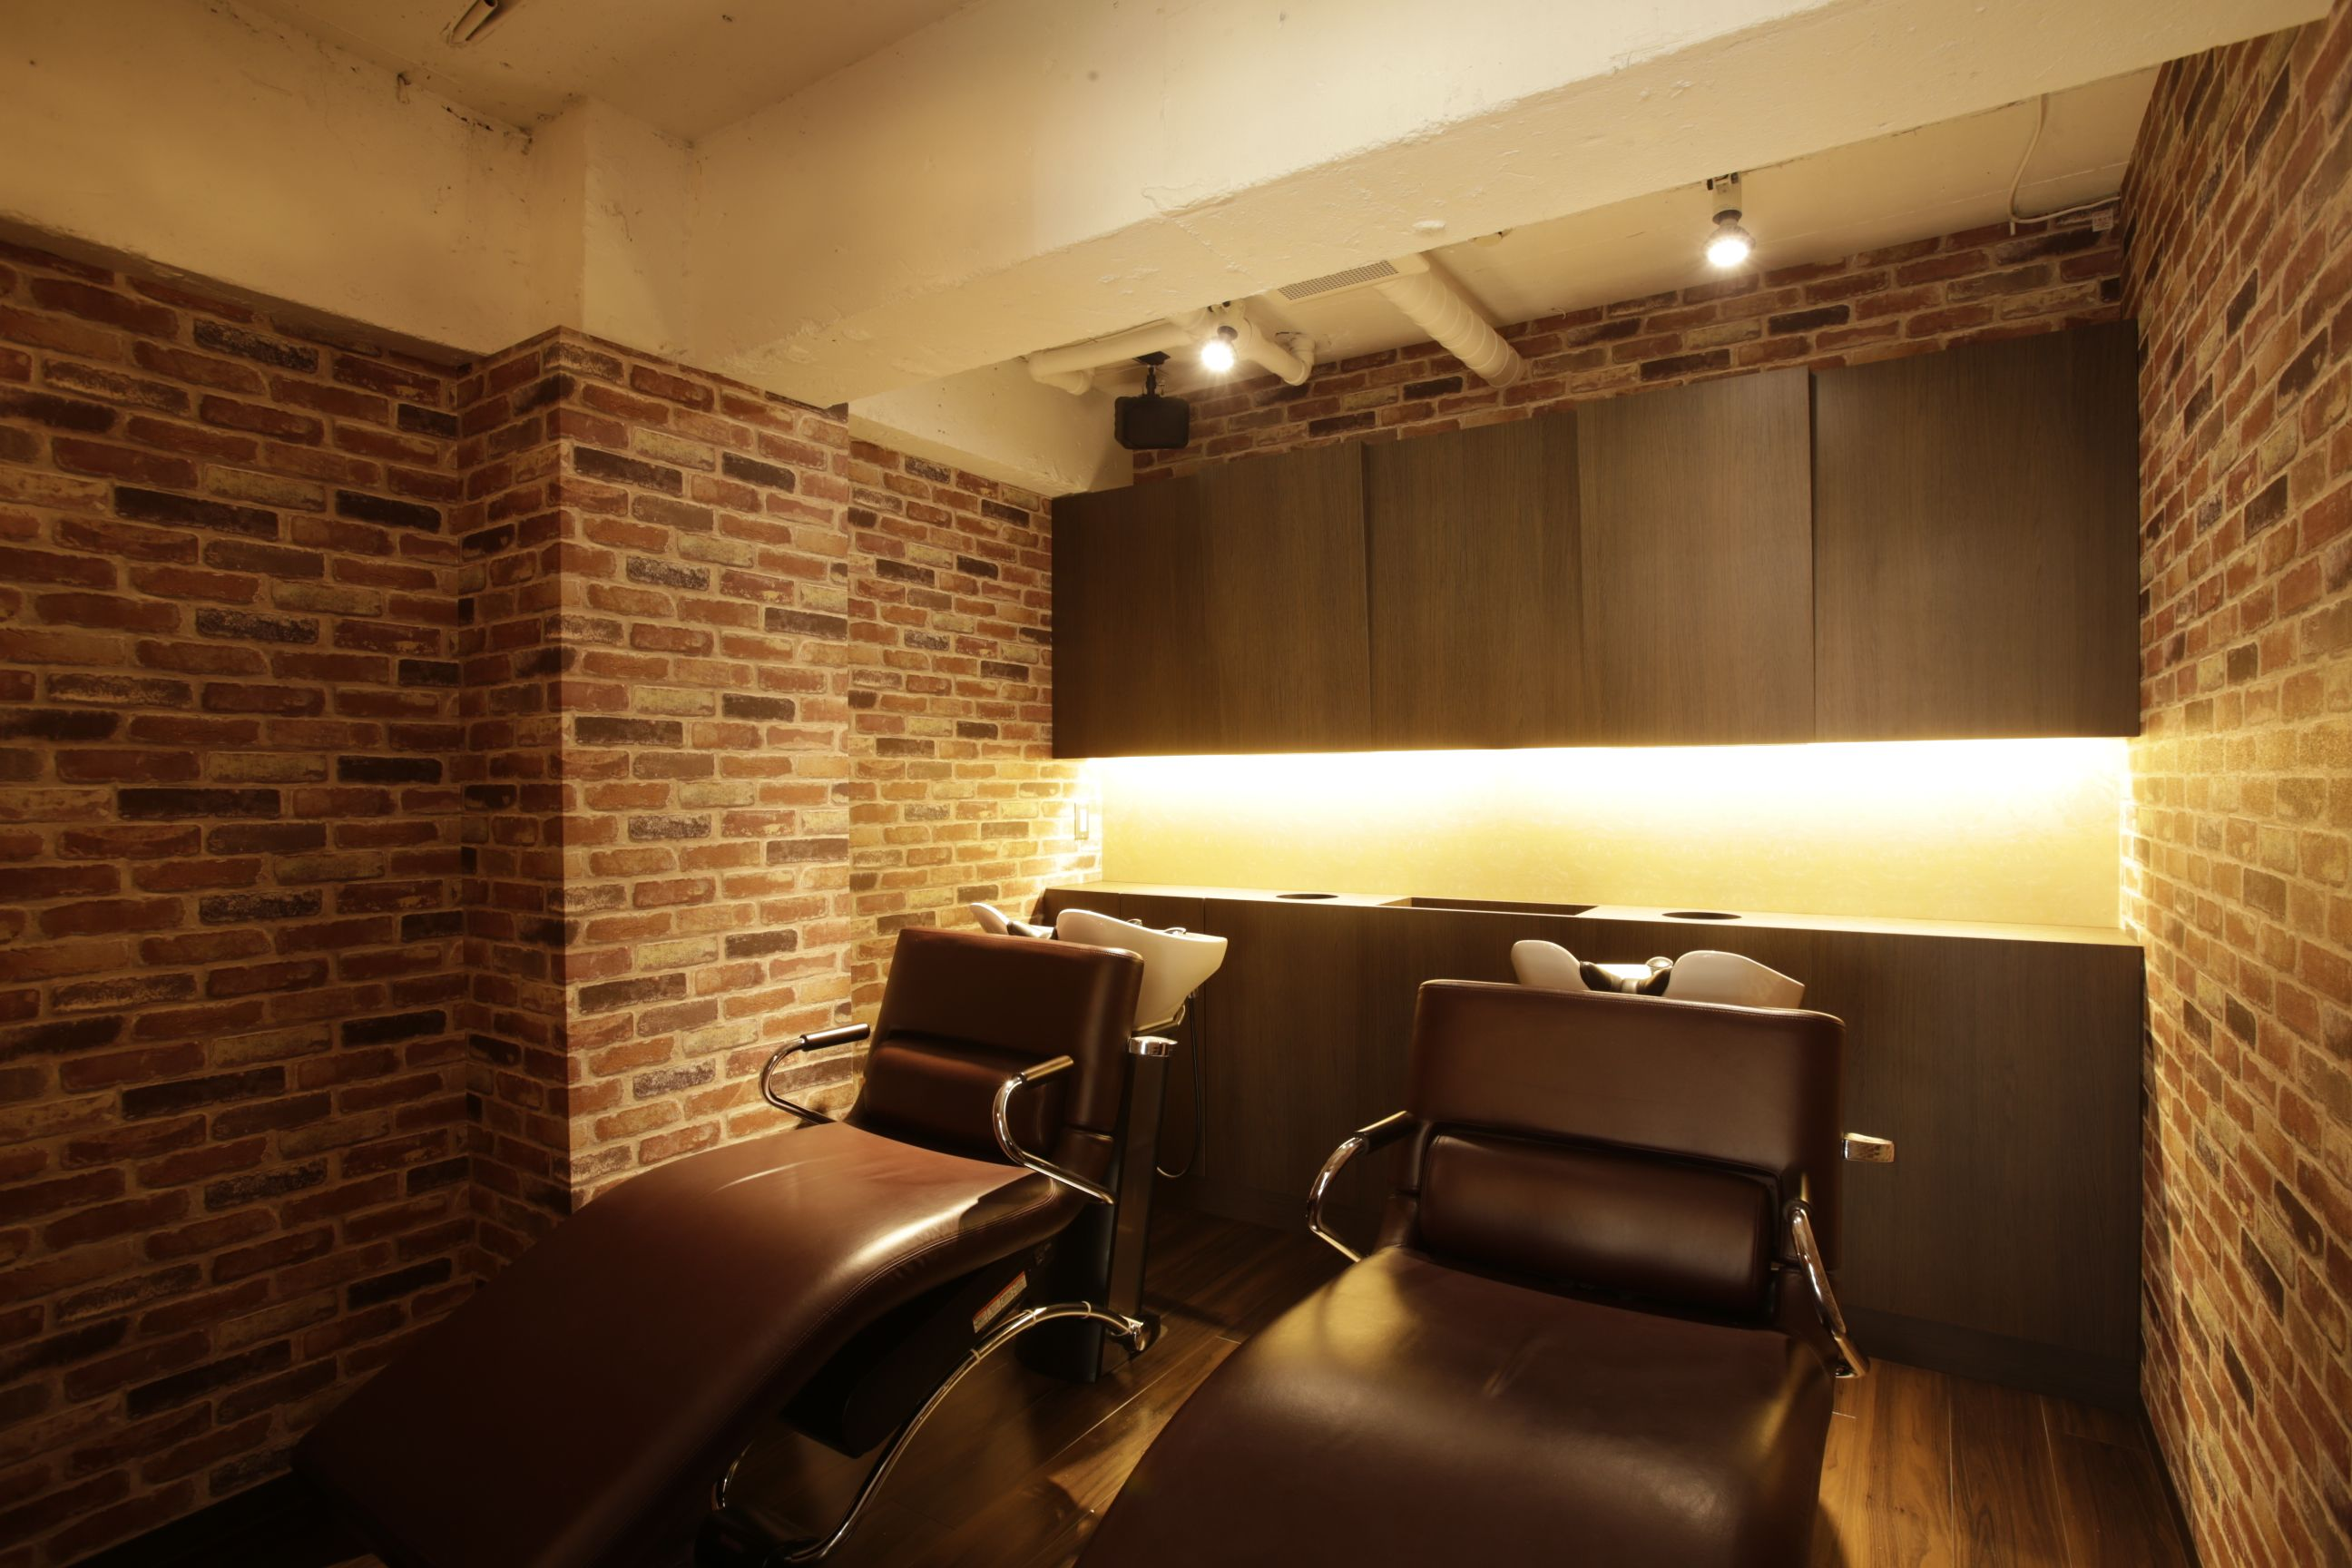 Beauty Salon Design Ideas beauty salon design ideas Beauty Salon Interior Design Ideas Shampoo Reception Hair Space Decor